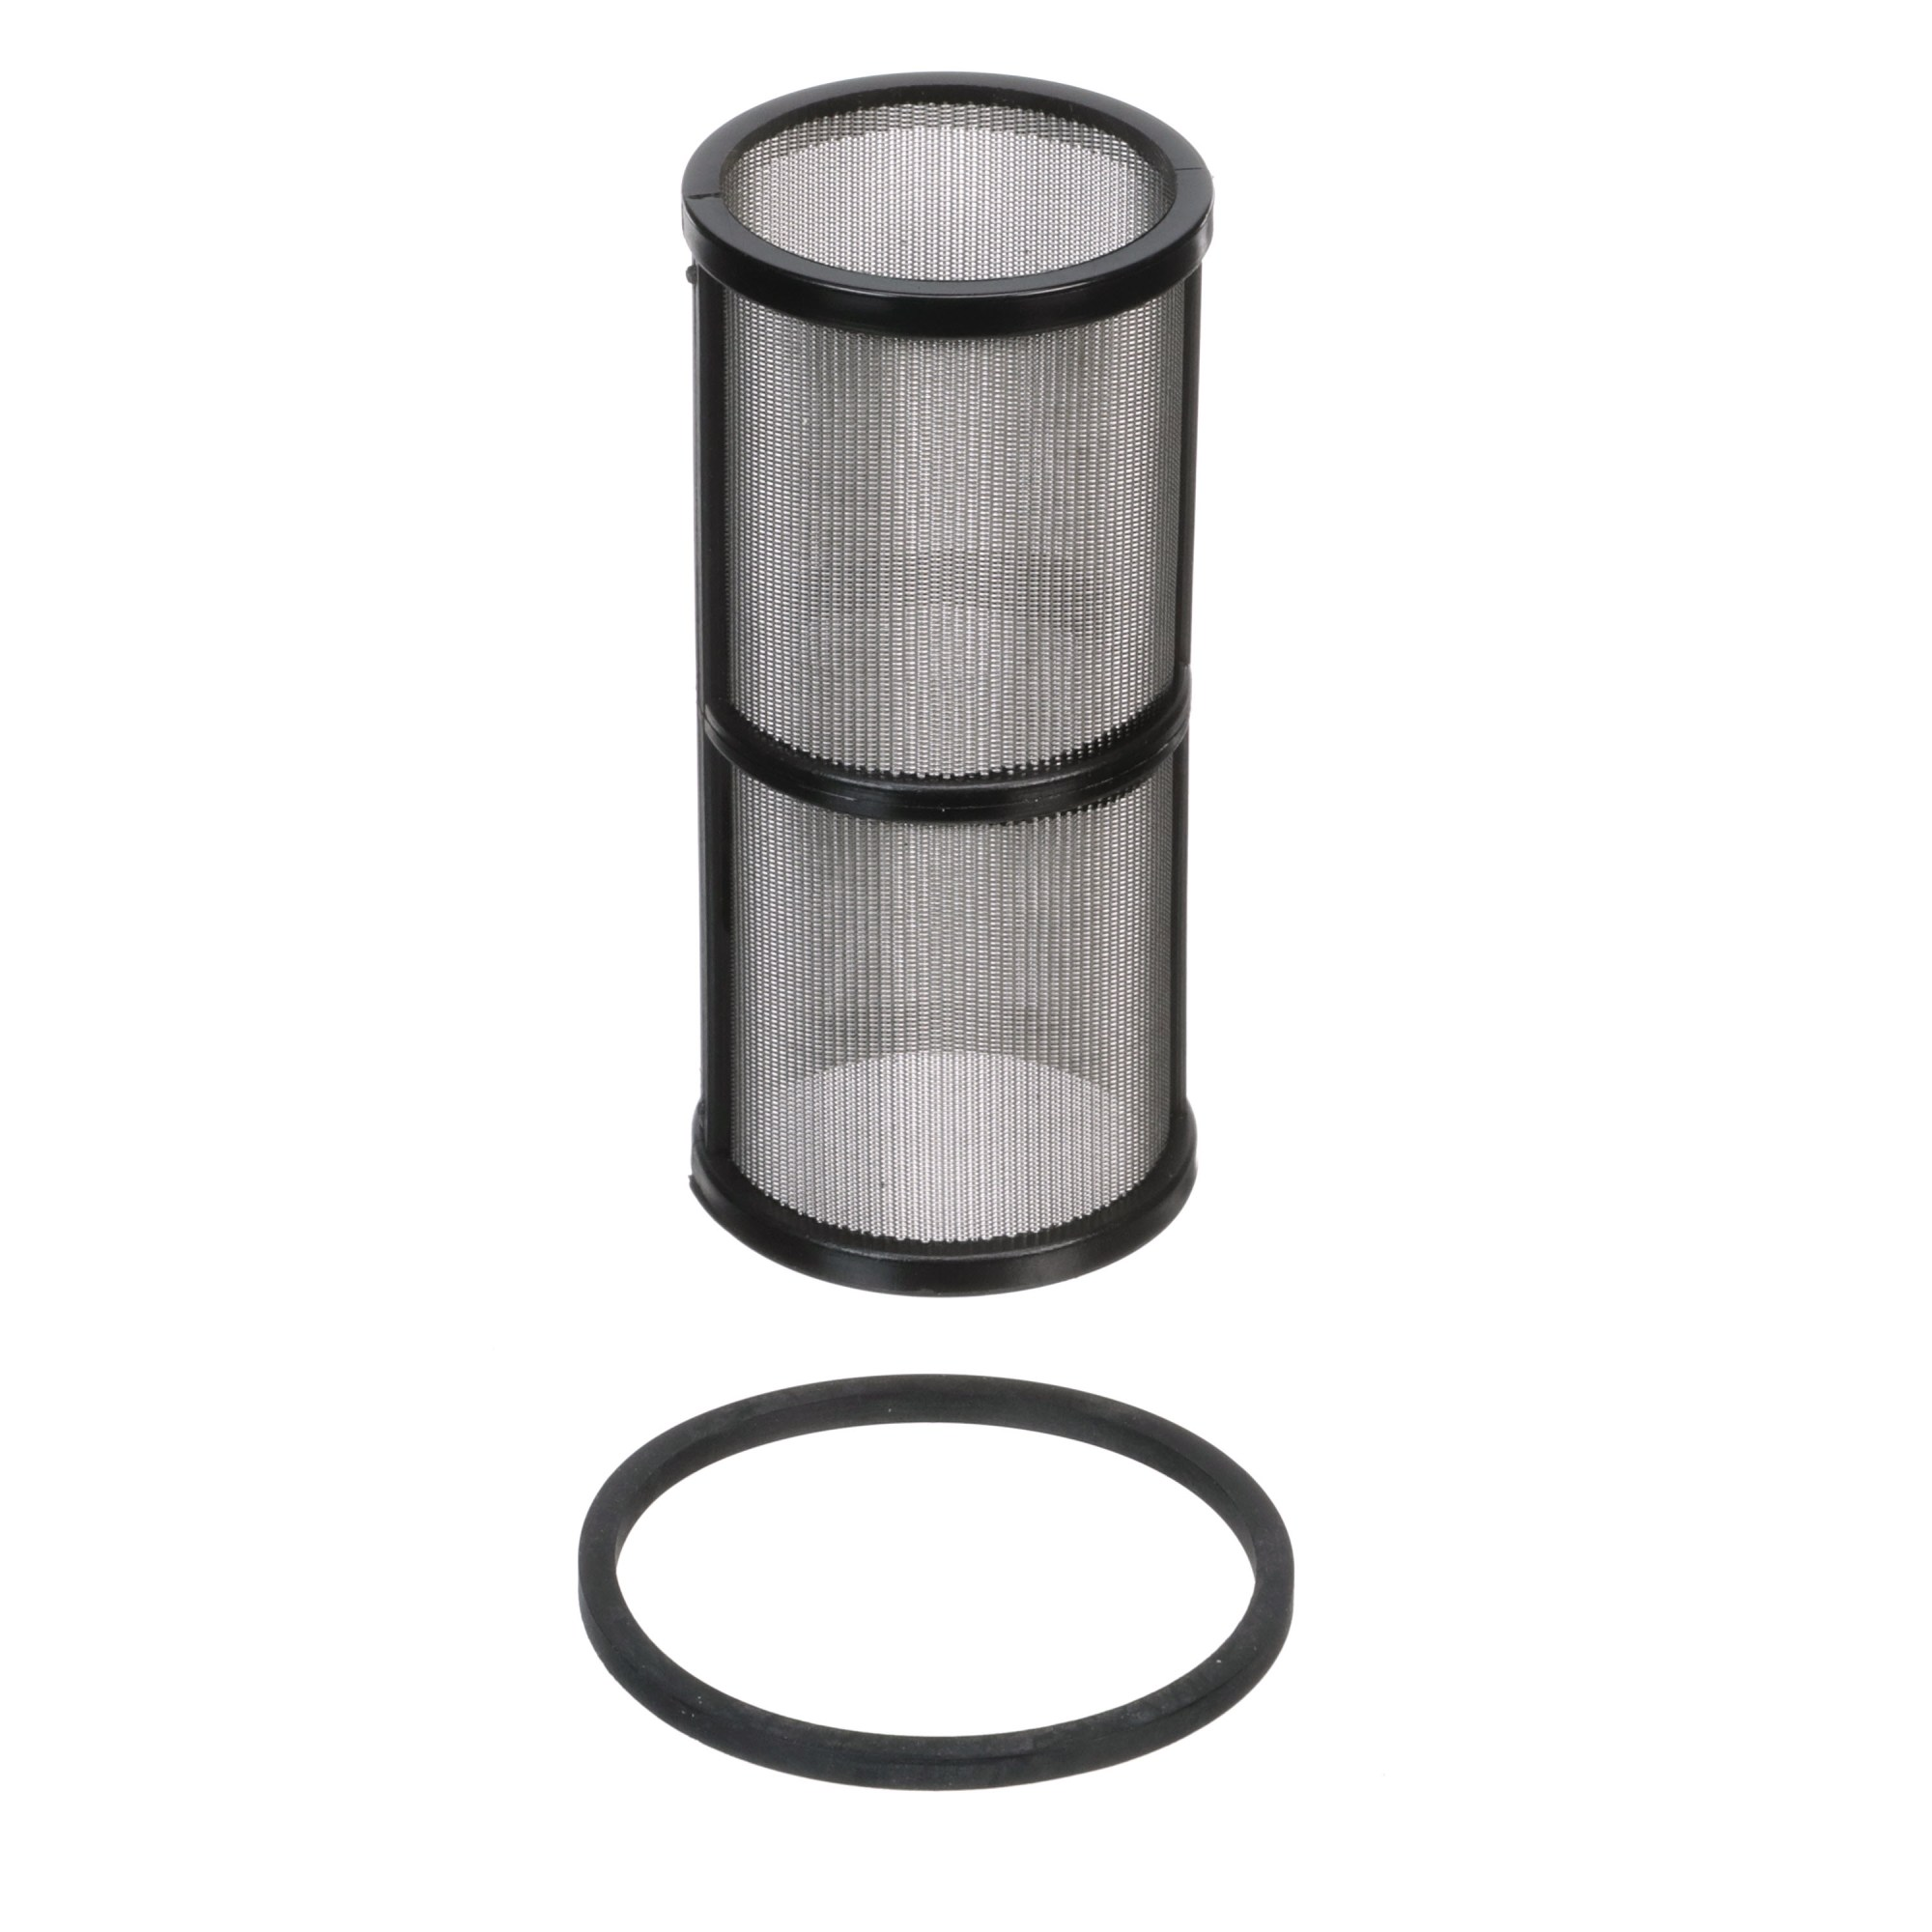 hight resolution of seachoice 50 20371 fuel filter gasket for dura lift electronic fuel pump kit walmart com